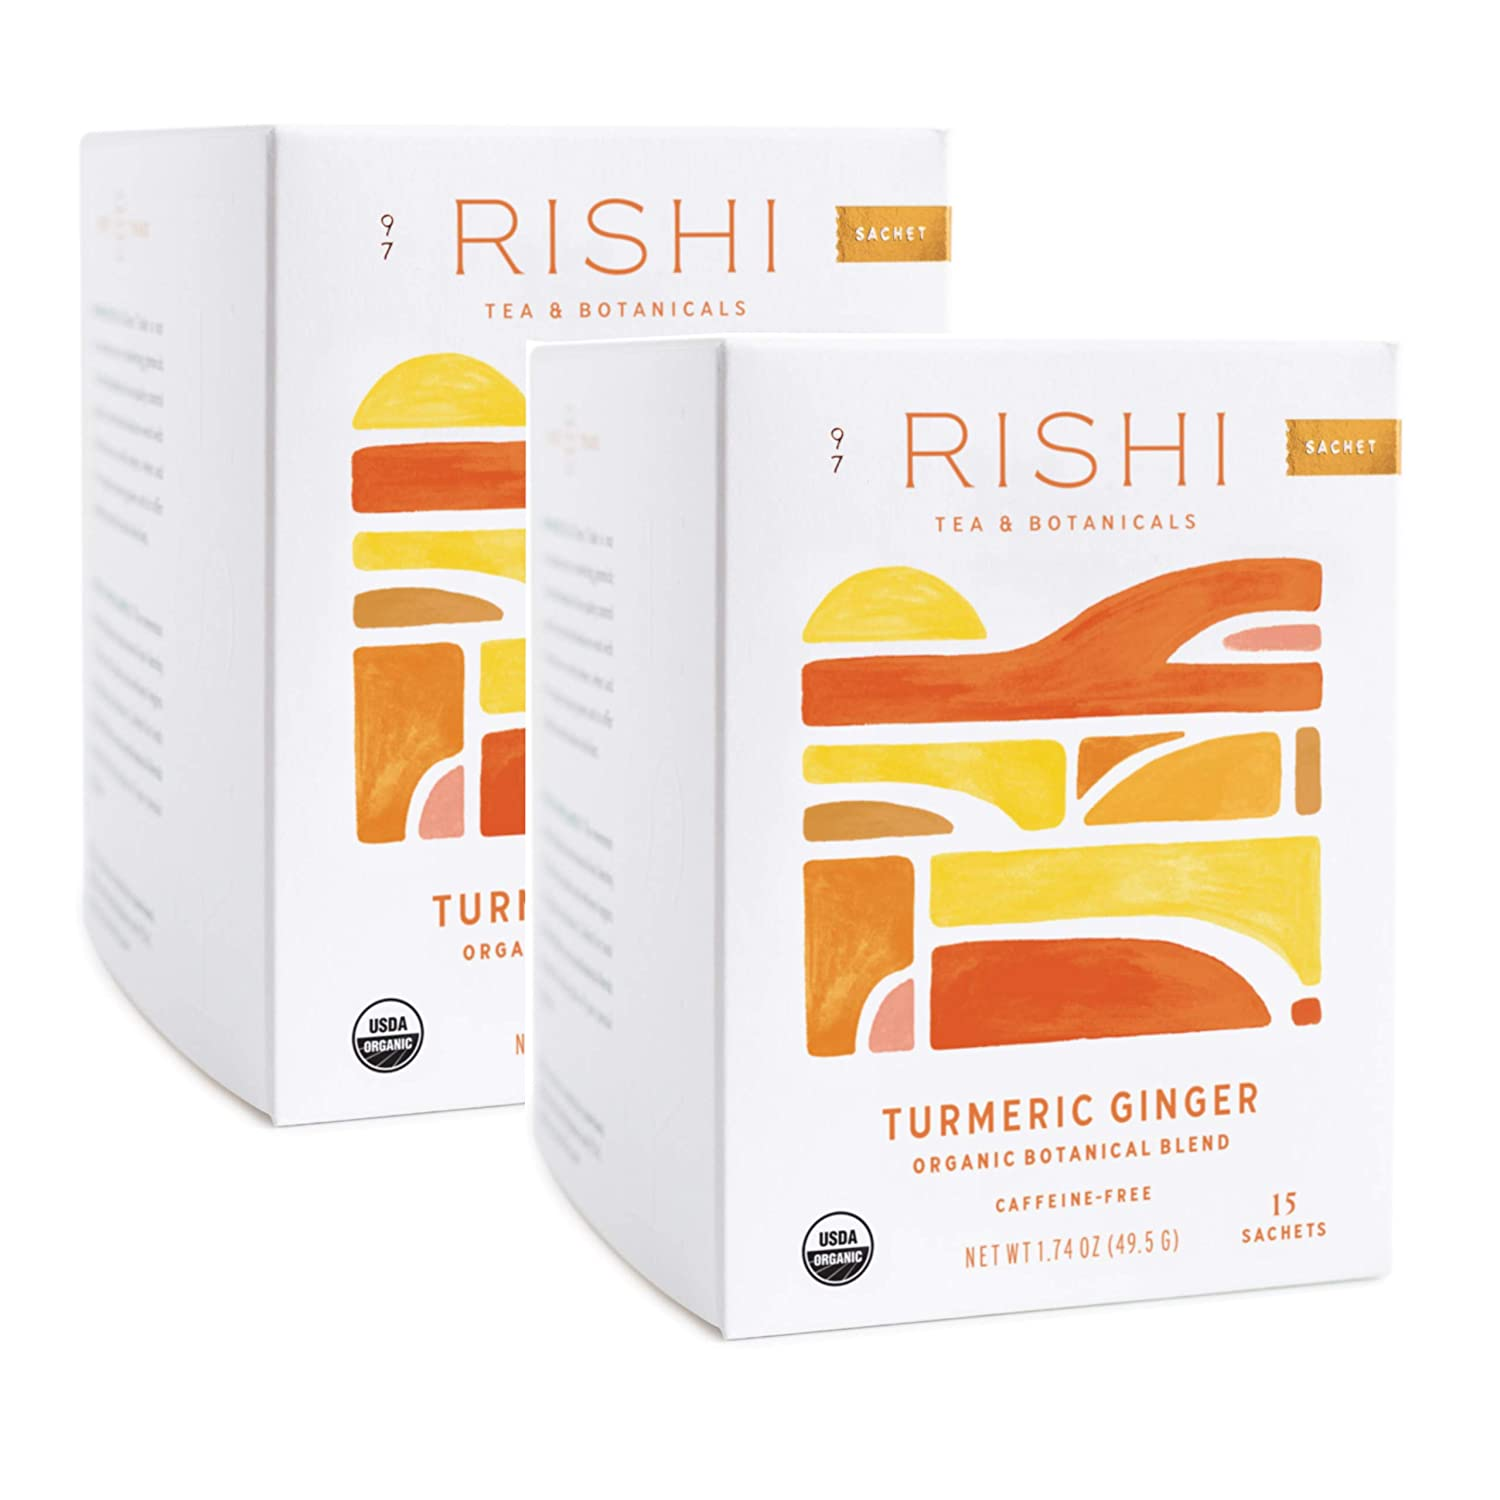 Review of Rishi Tea Turmeric Ginger Tea, Organic Caffeine-Free Herbal Tea Sachet Bags, 15 Count (Pack of 2)